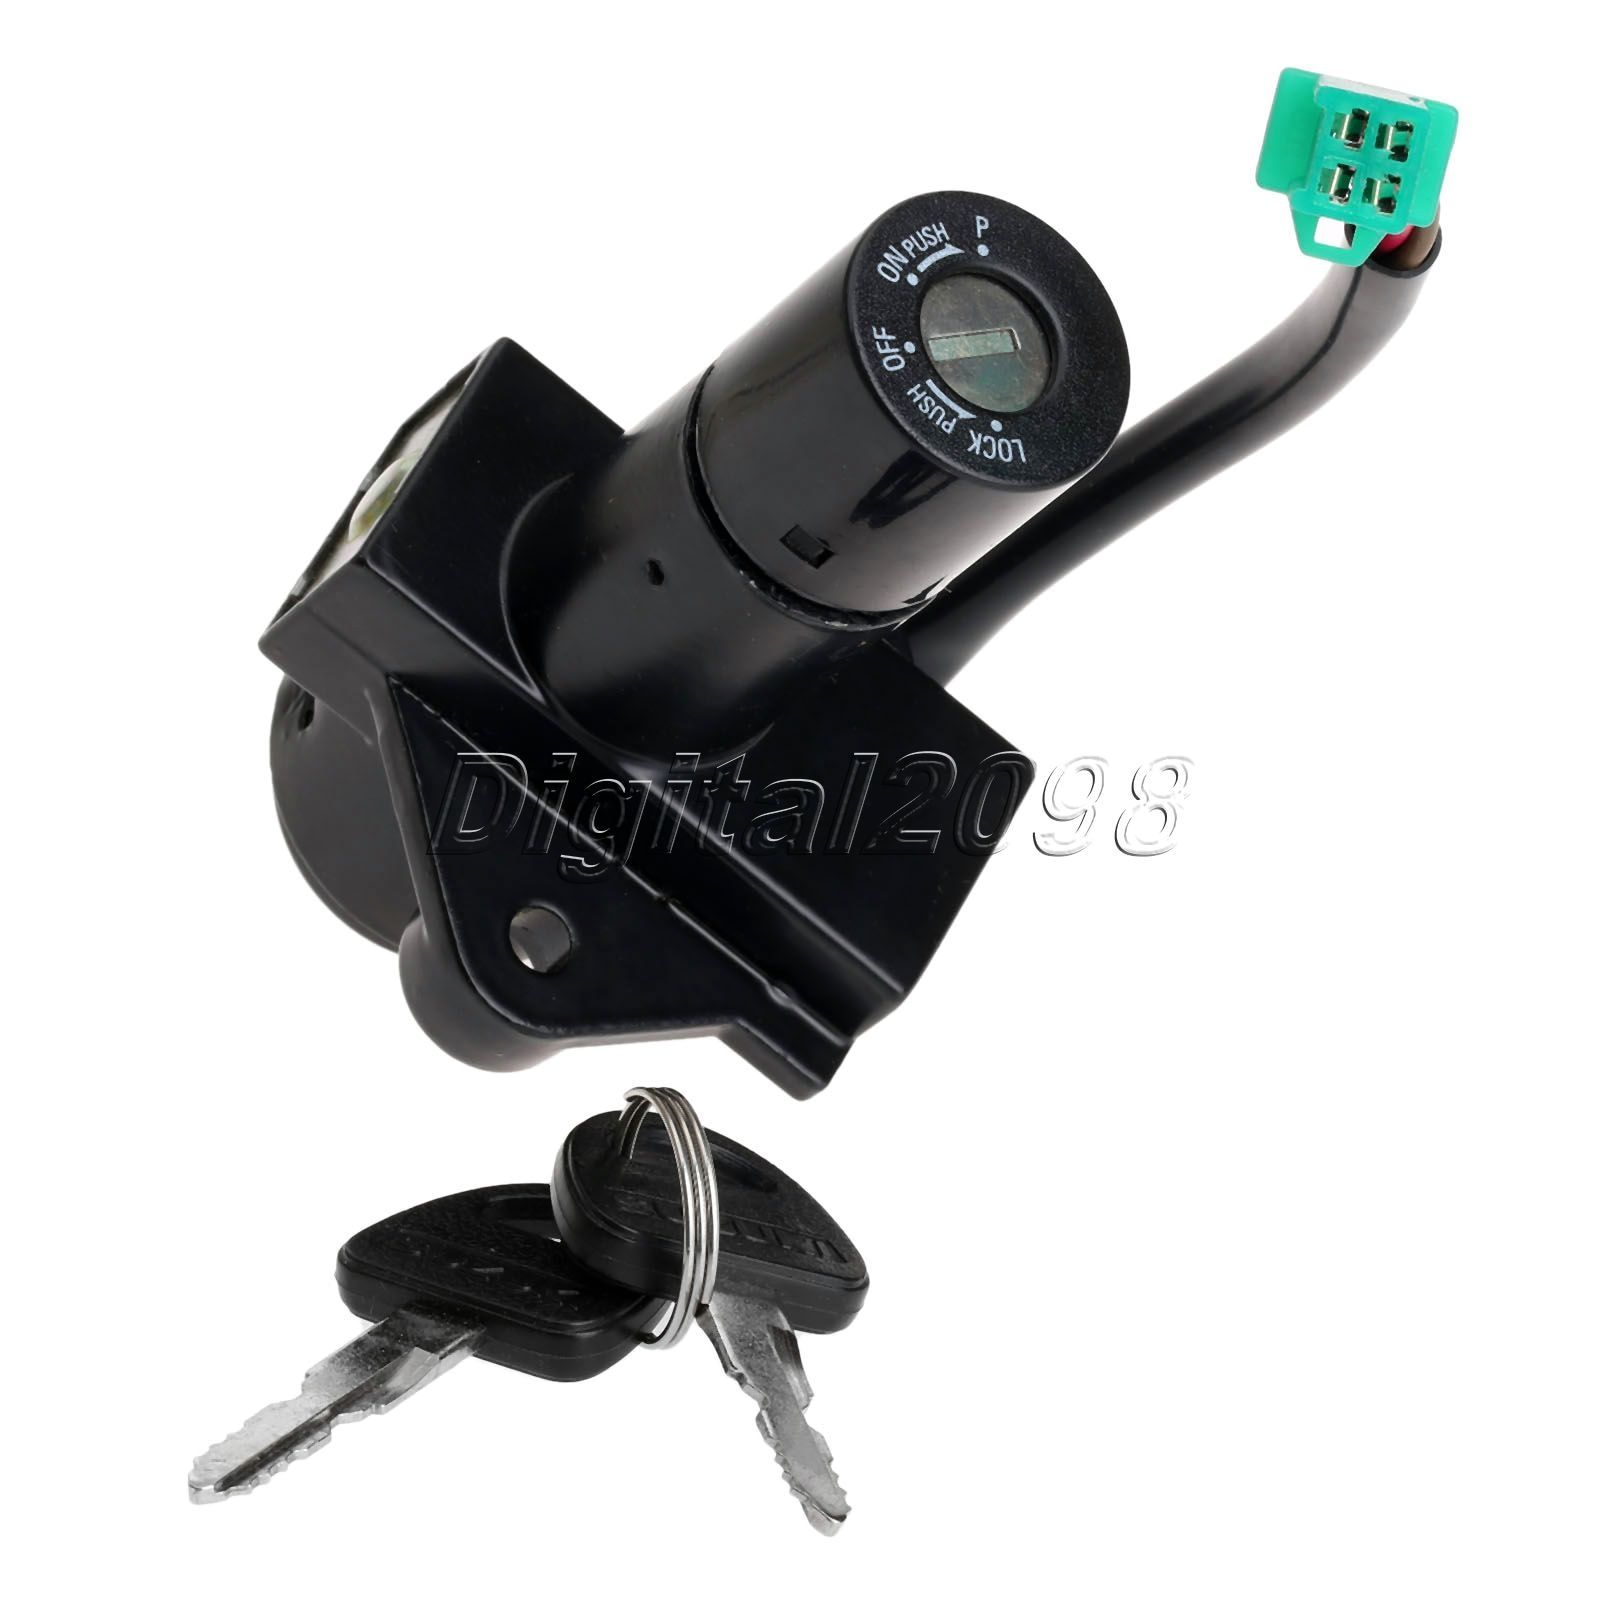 Pit Bike Cdi Aluminum Motorcycle Ignition Key Switch Lock for Suzuki GS 1000 1100 450 550 650 750 850 GN 250 GSX 750 GS1100 1982